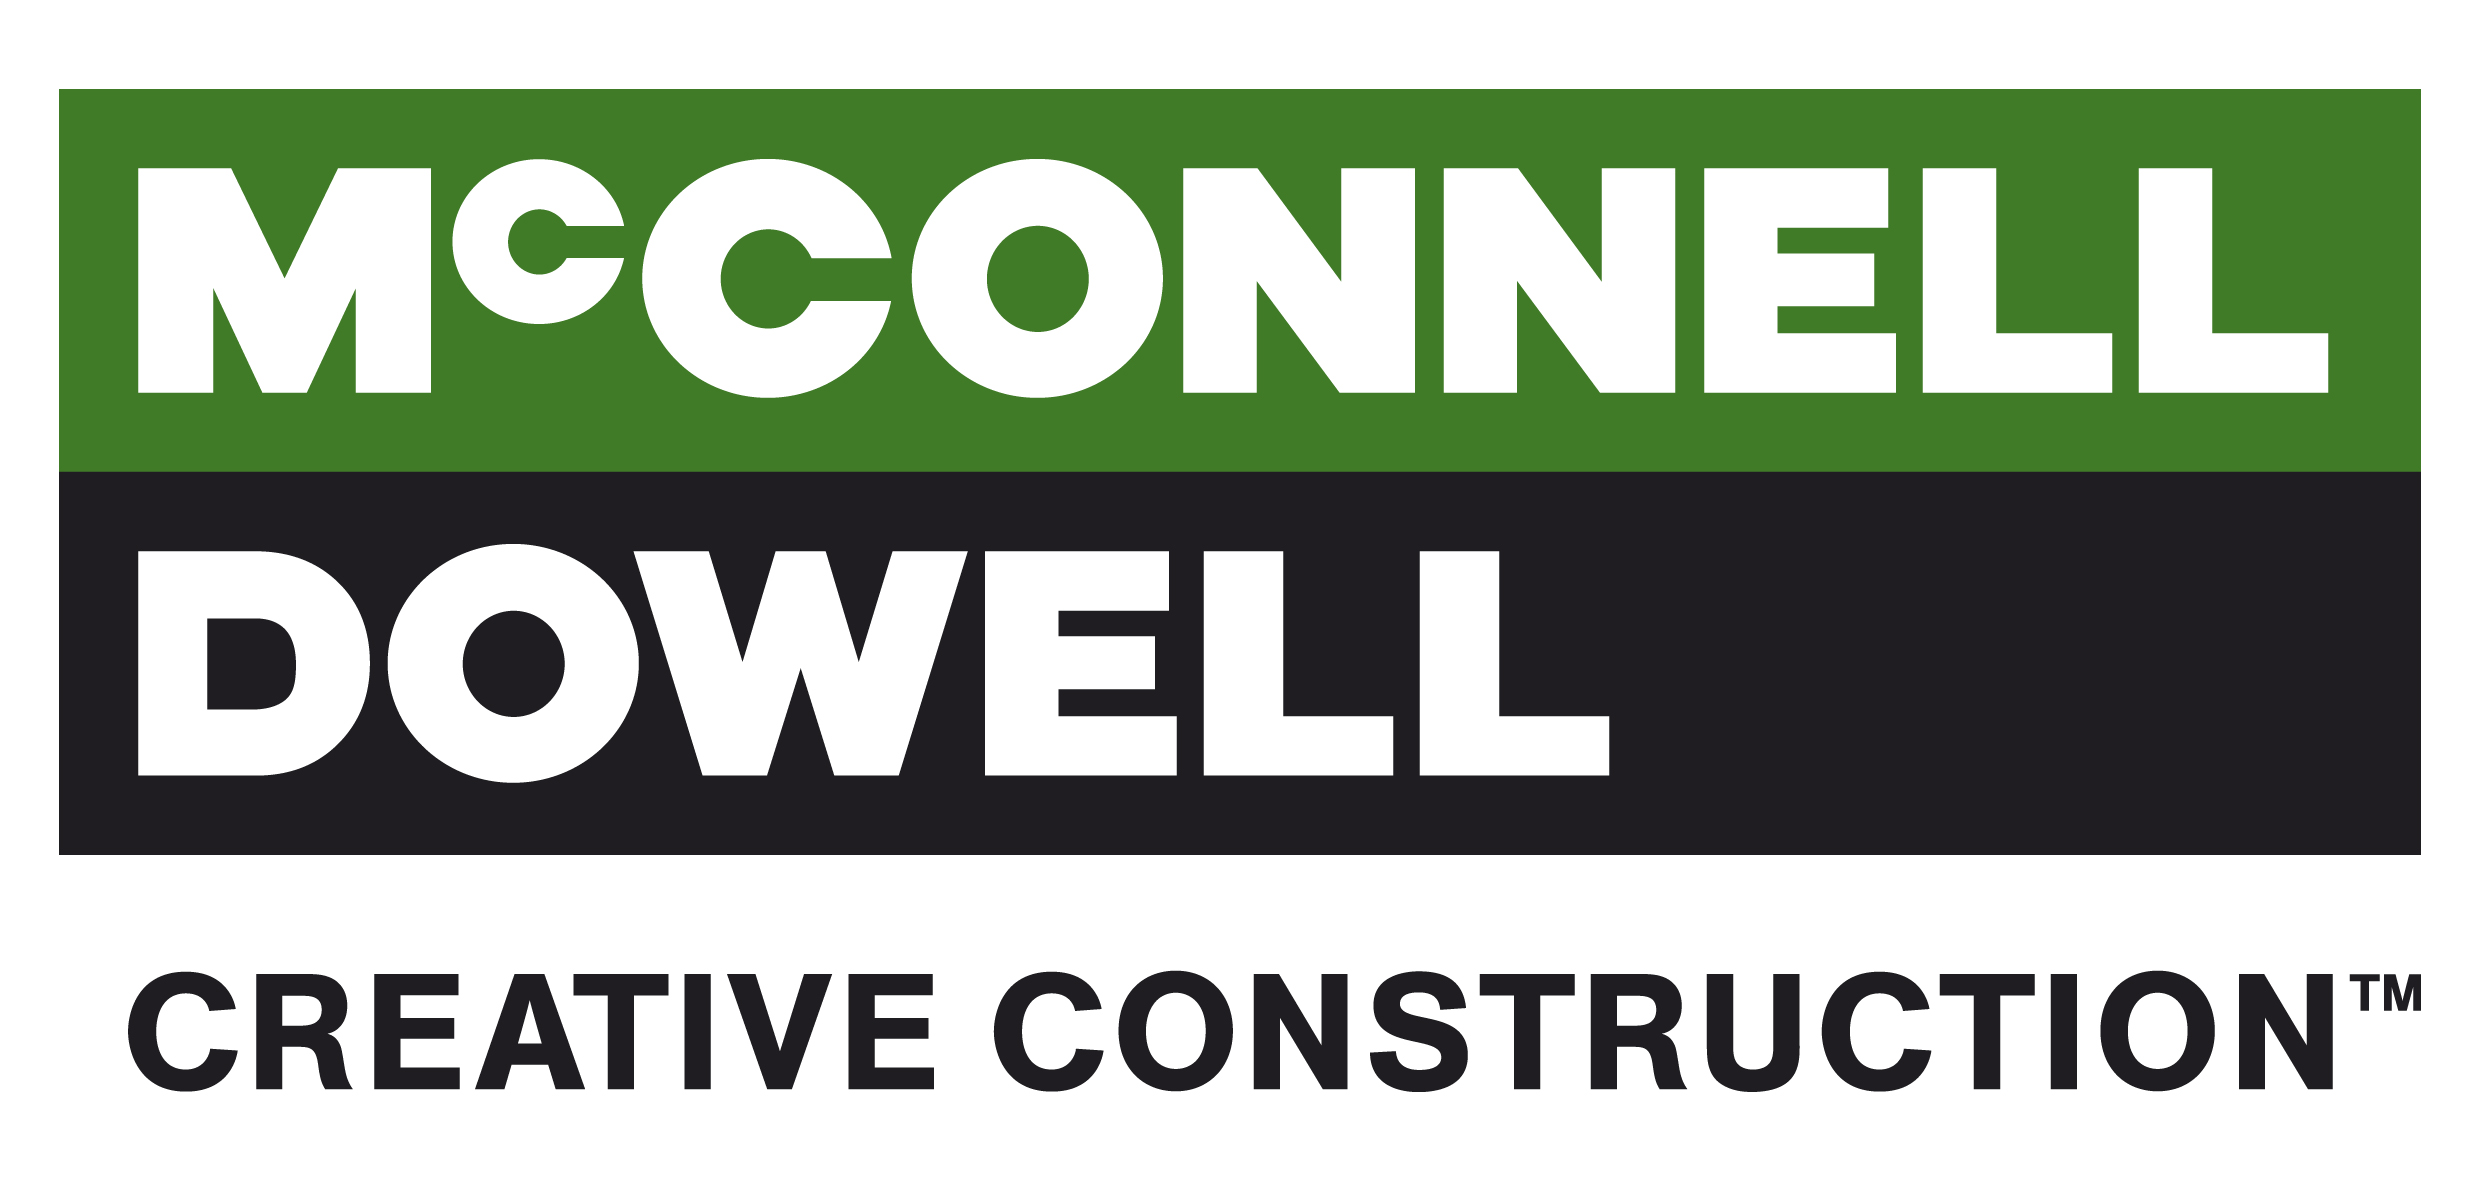 McConnell Dowell Creative Construction Sdn Bhd